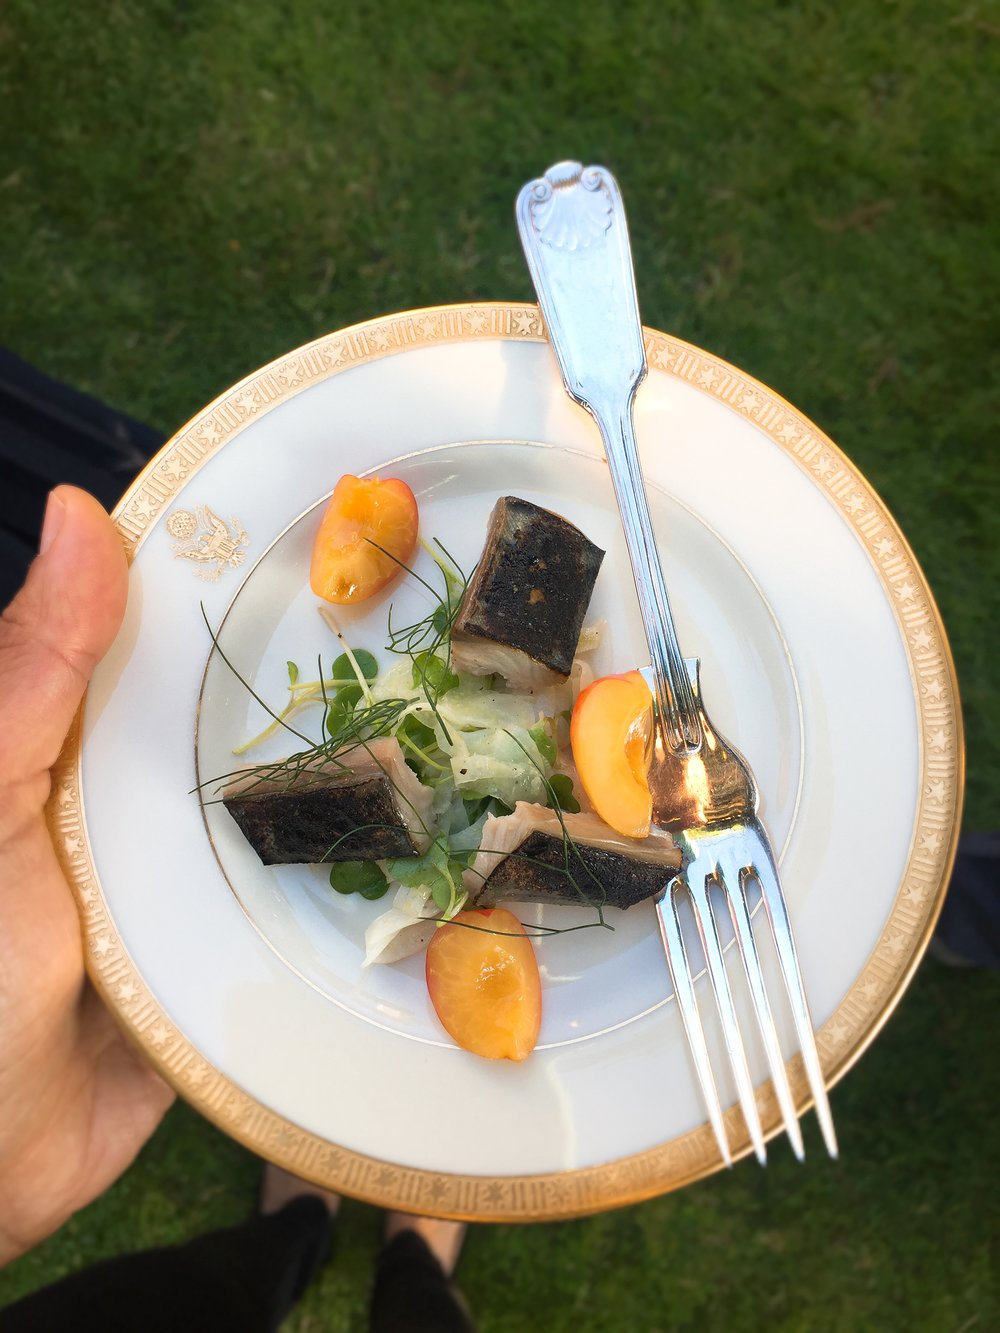 Mackerel and rainier cherries